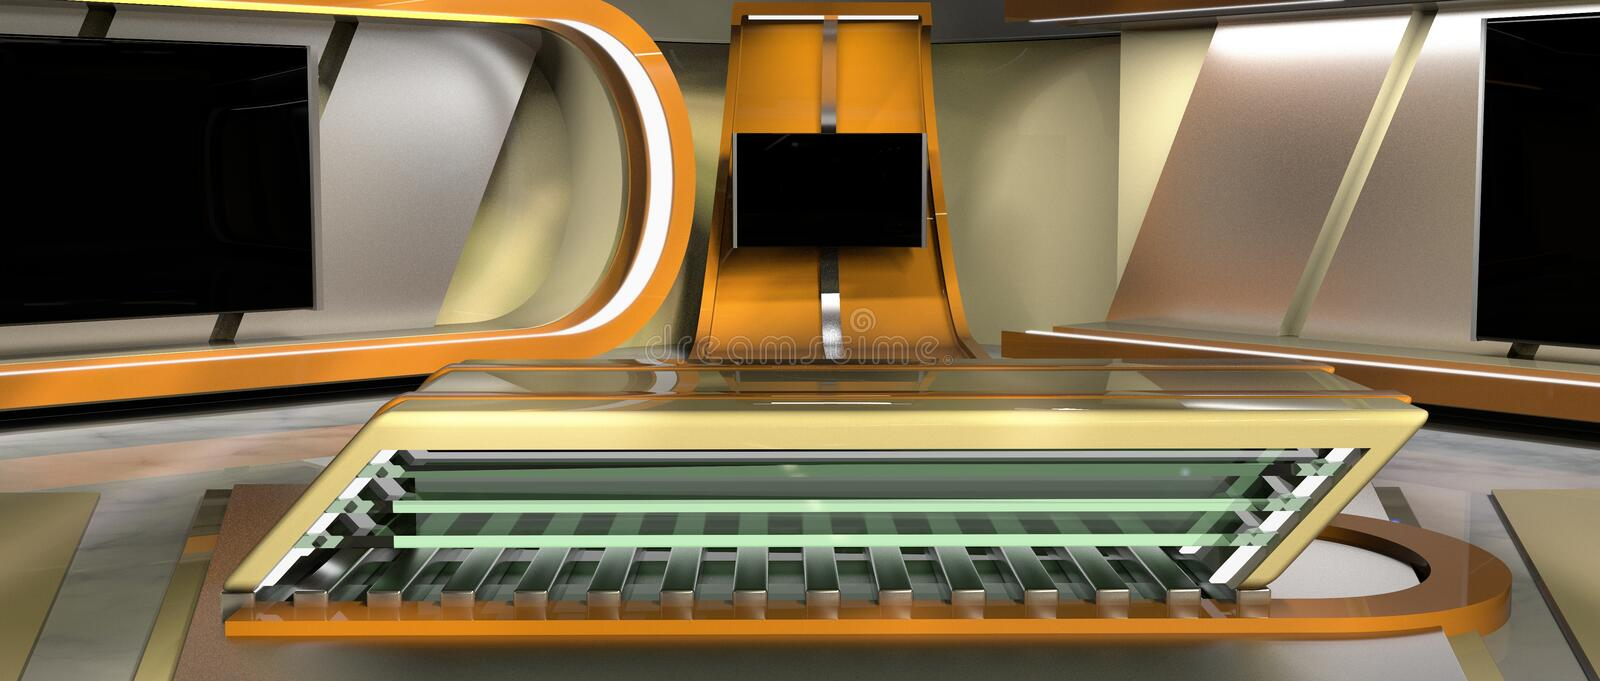 News Virtual Set. CGI 3D rendered Virtual Set for news and TV, front view stock illustration